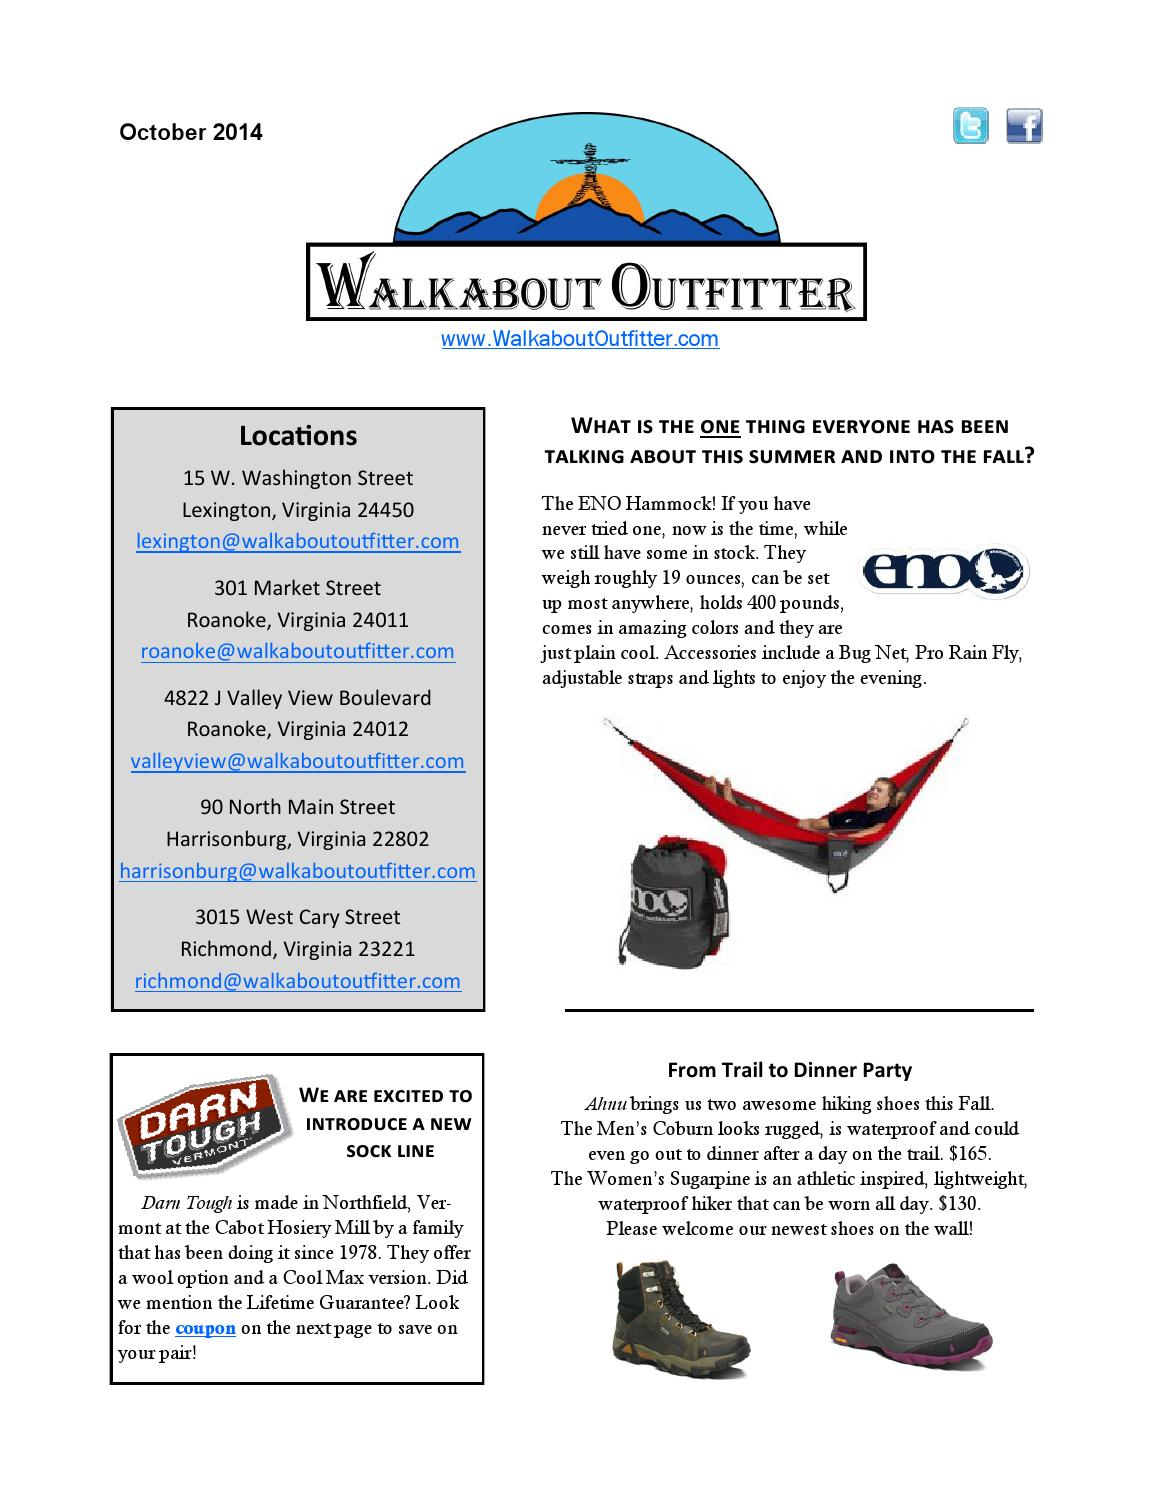 8ec5eb7a9c7 Walkabout Outfitter October Newsletter by Walkabout Outfitter - issuu